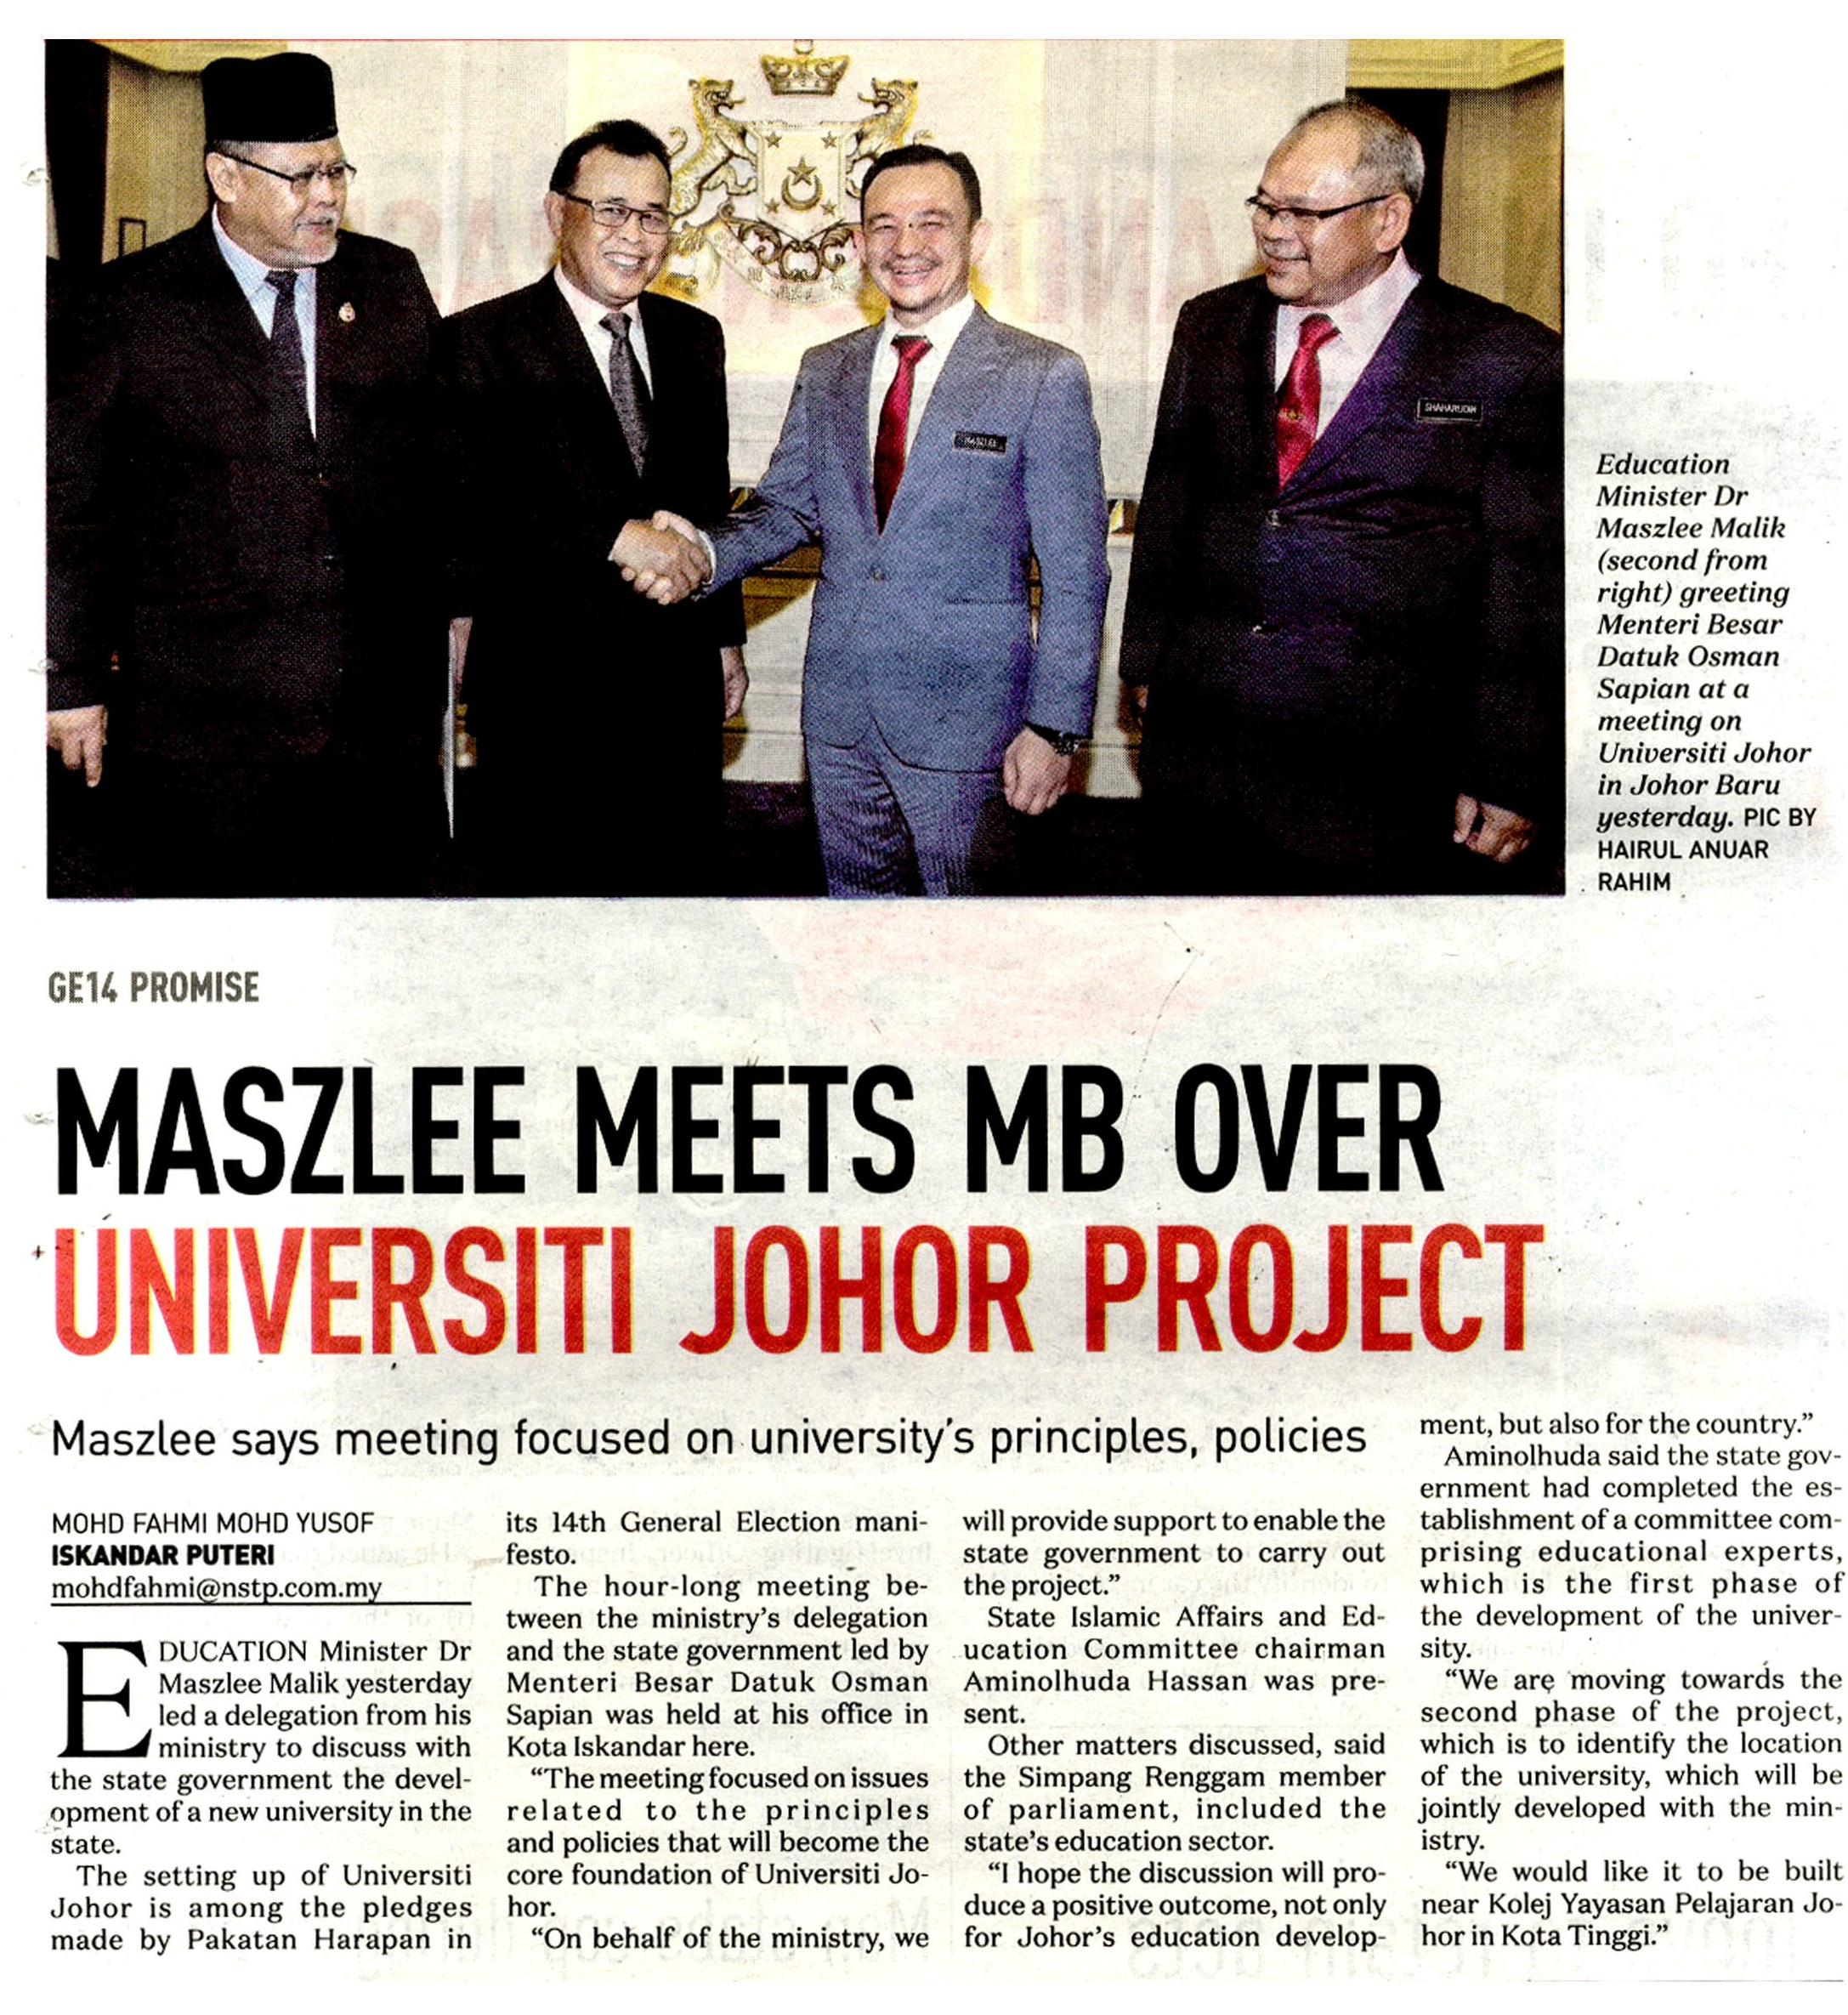 NST Maszlee meets MB over Universiti Johor project